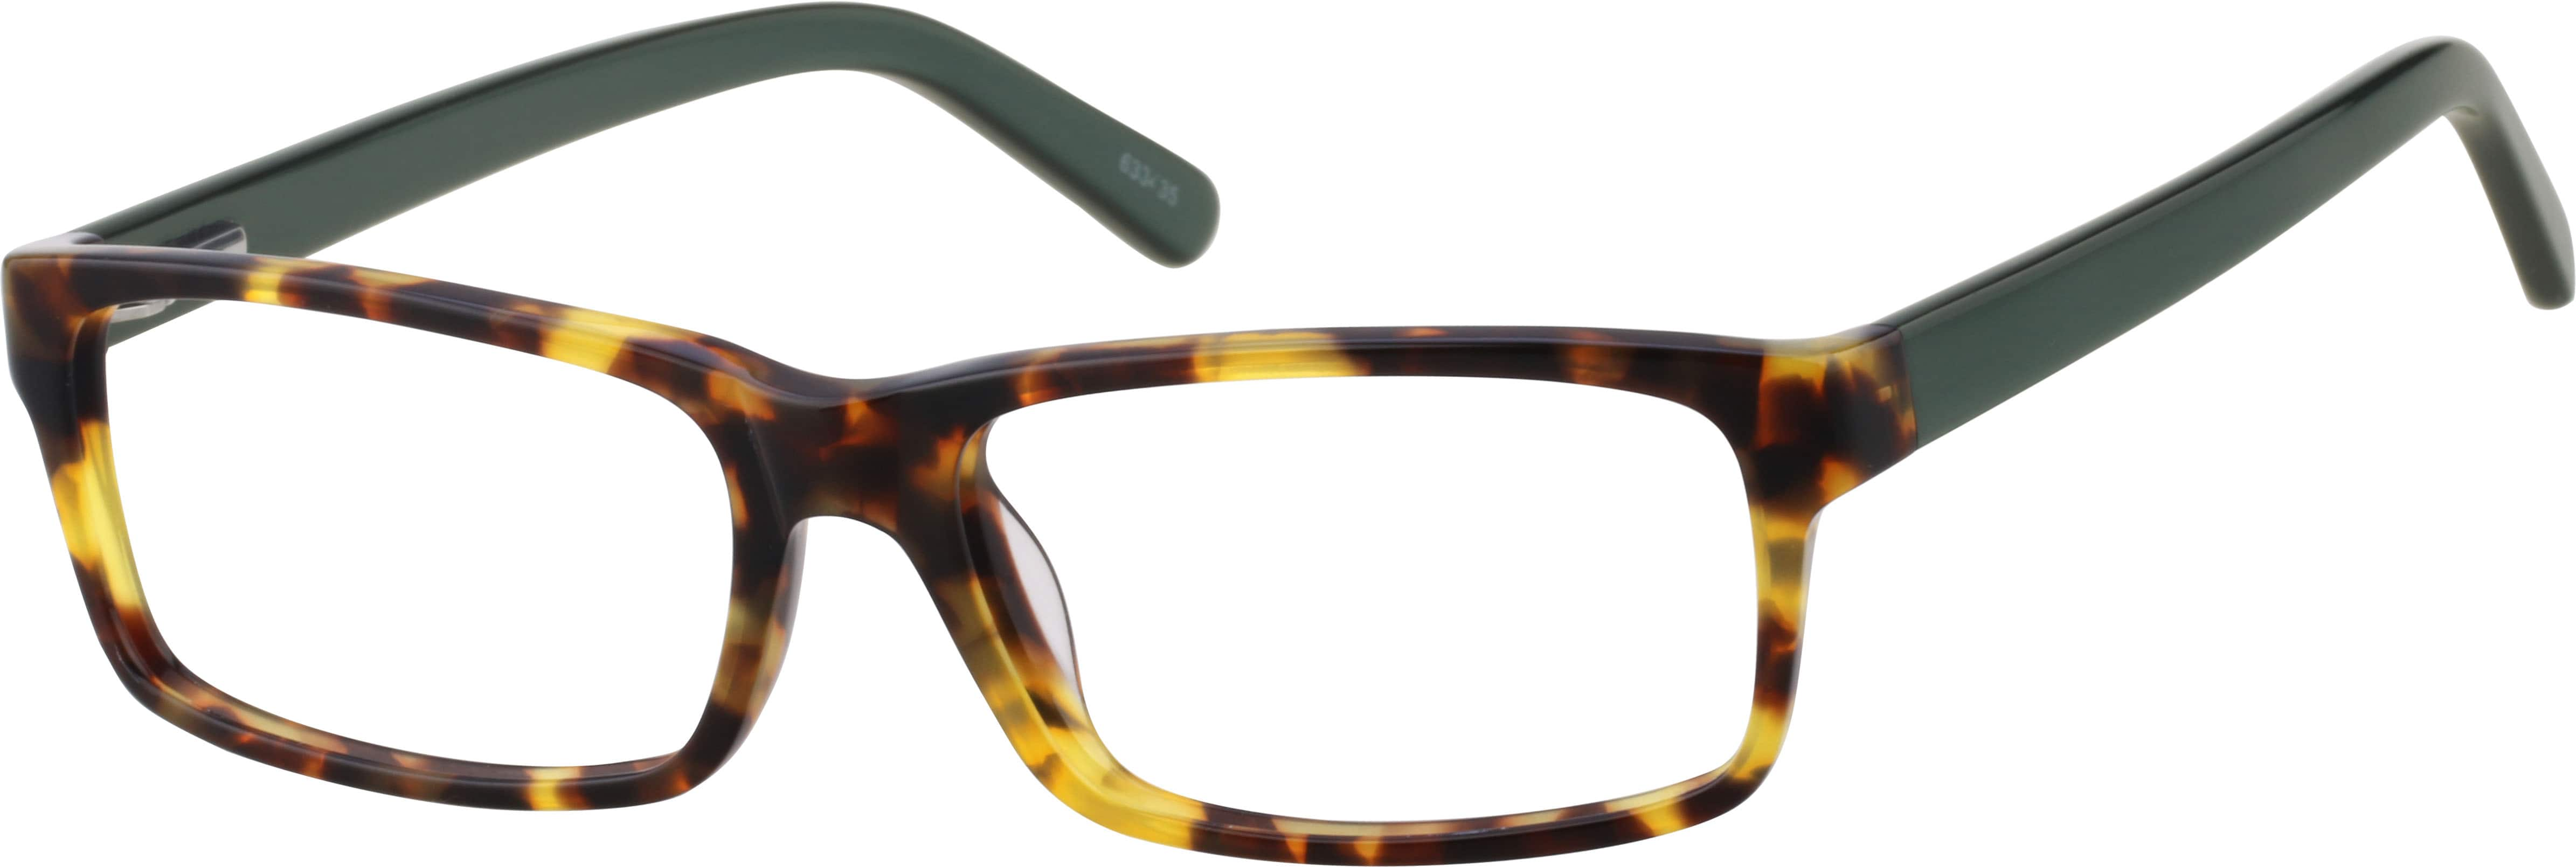 633435-acetate-full-rim-frame-with-spring-hinges